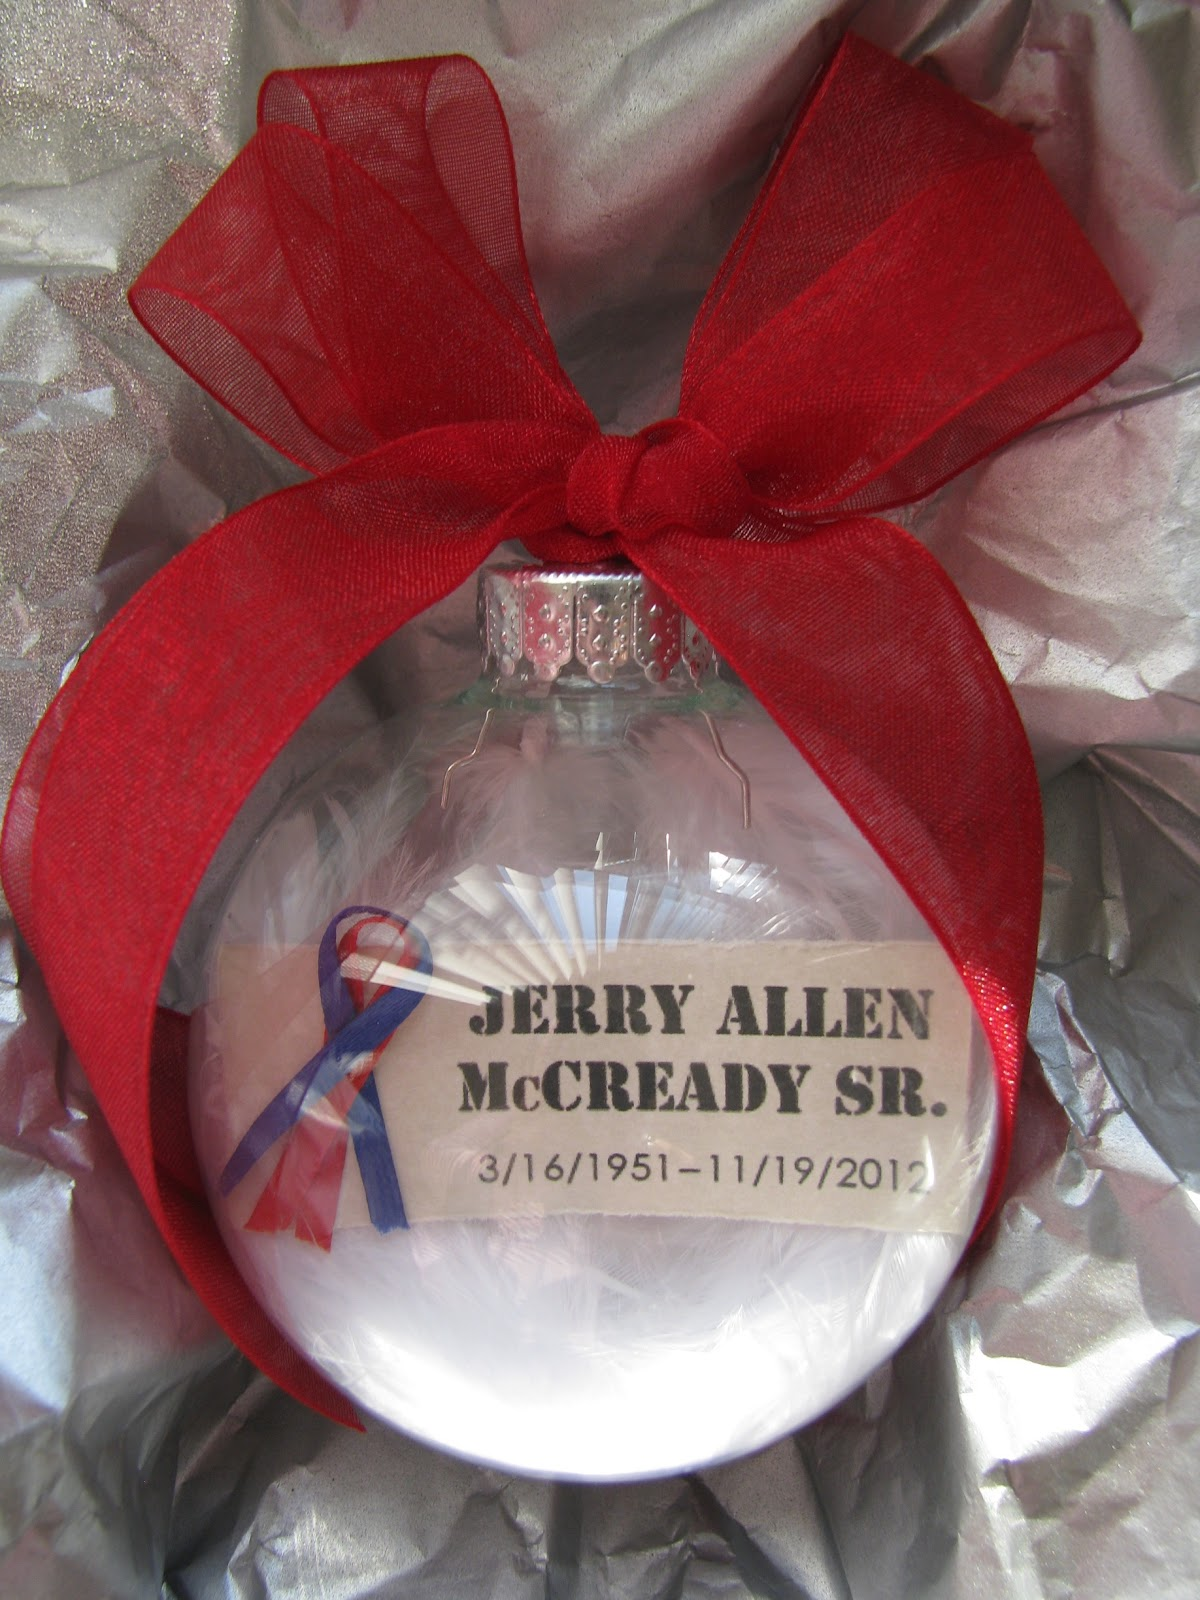 Baby loss ornaments - In Addition To Our Baby And Pregnancy Loss Memorial Ornaments We Now Offer A Patriotic Theme To Honor Our Fallen Heroes